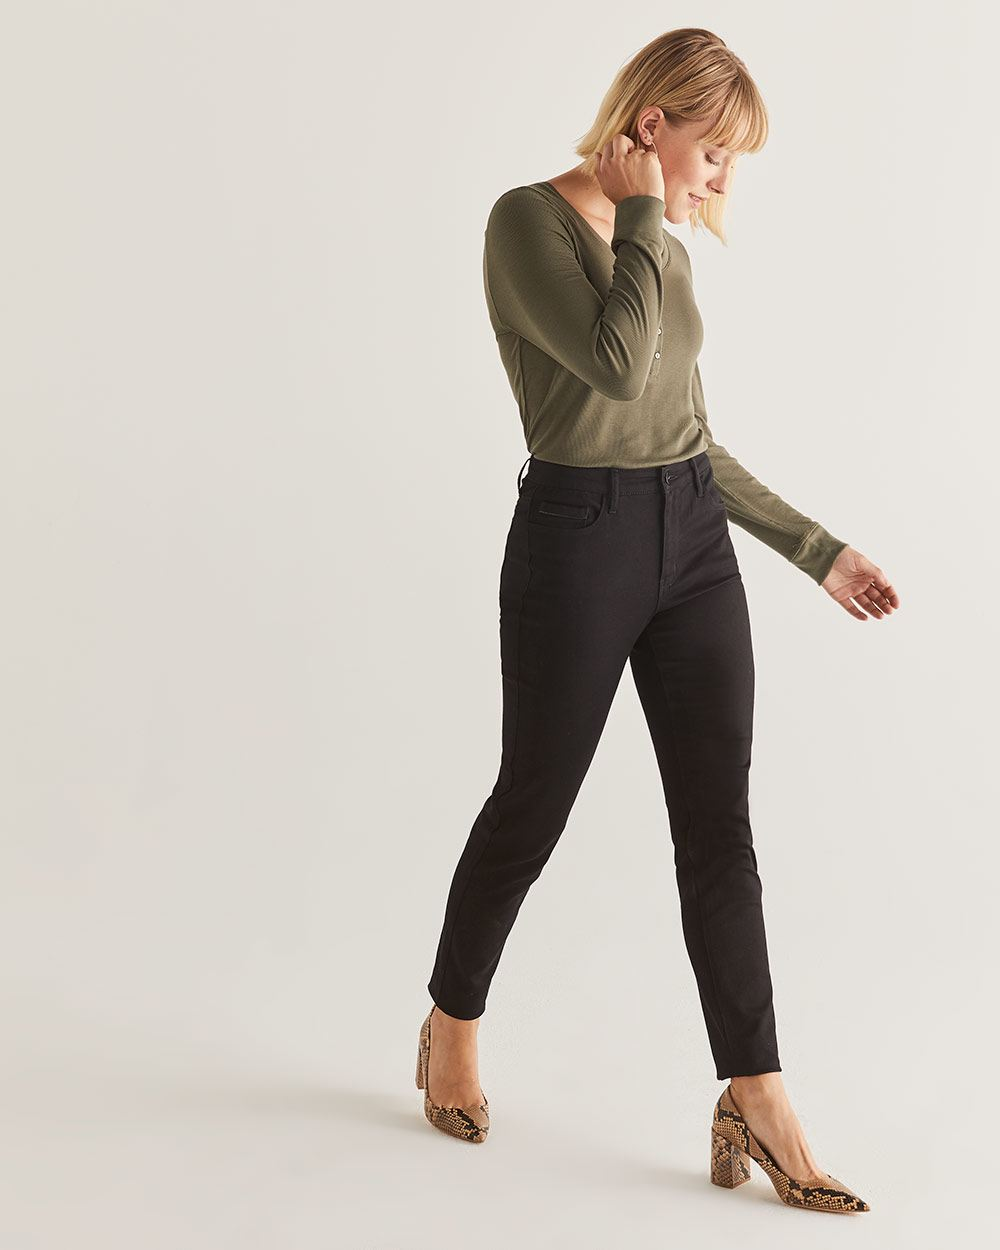 The Petite Signature Soft Skinny Black Jeans